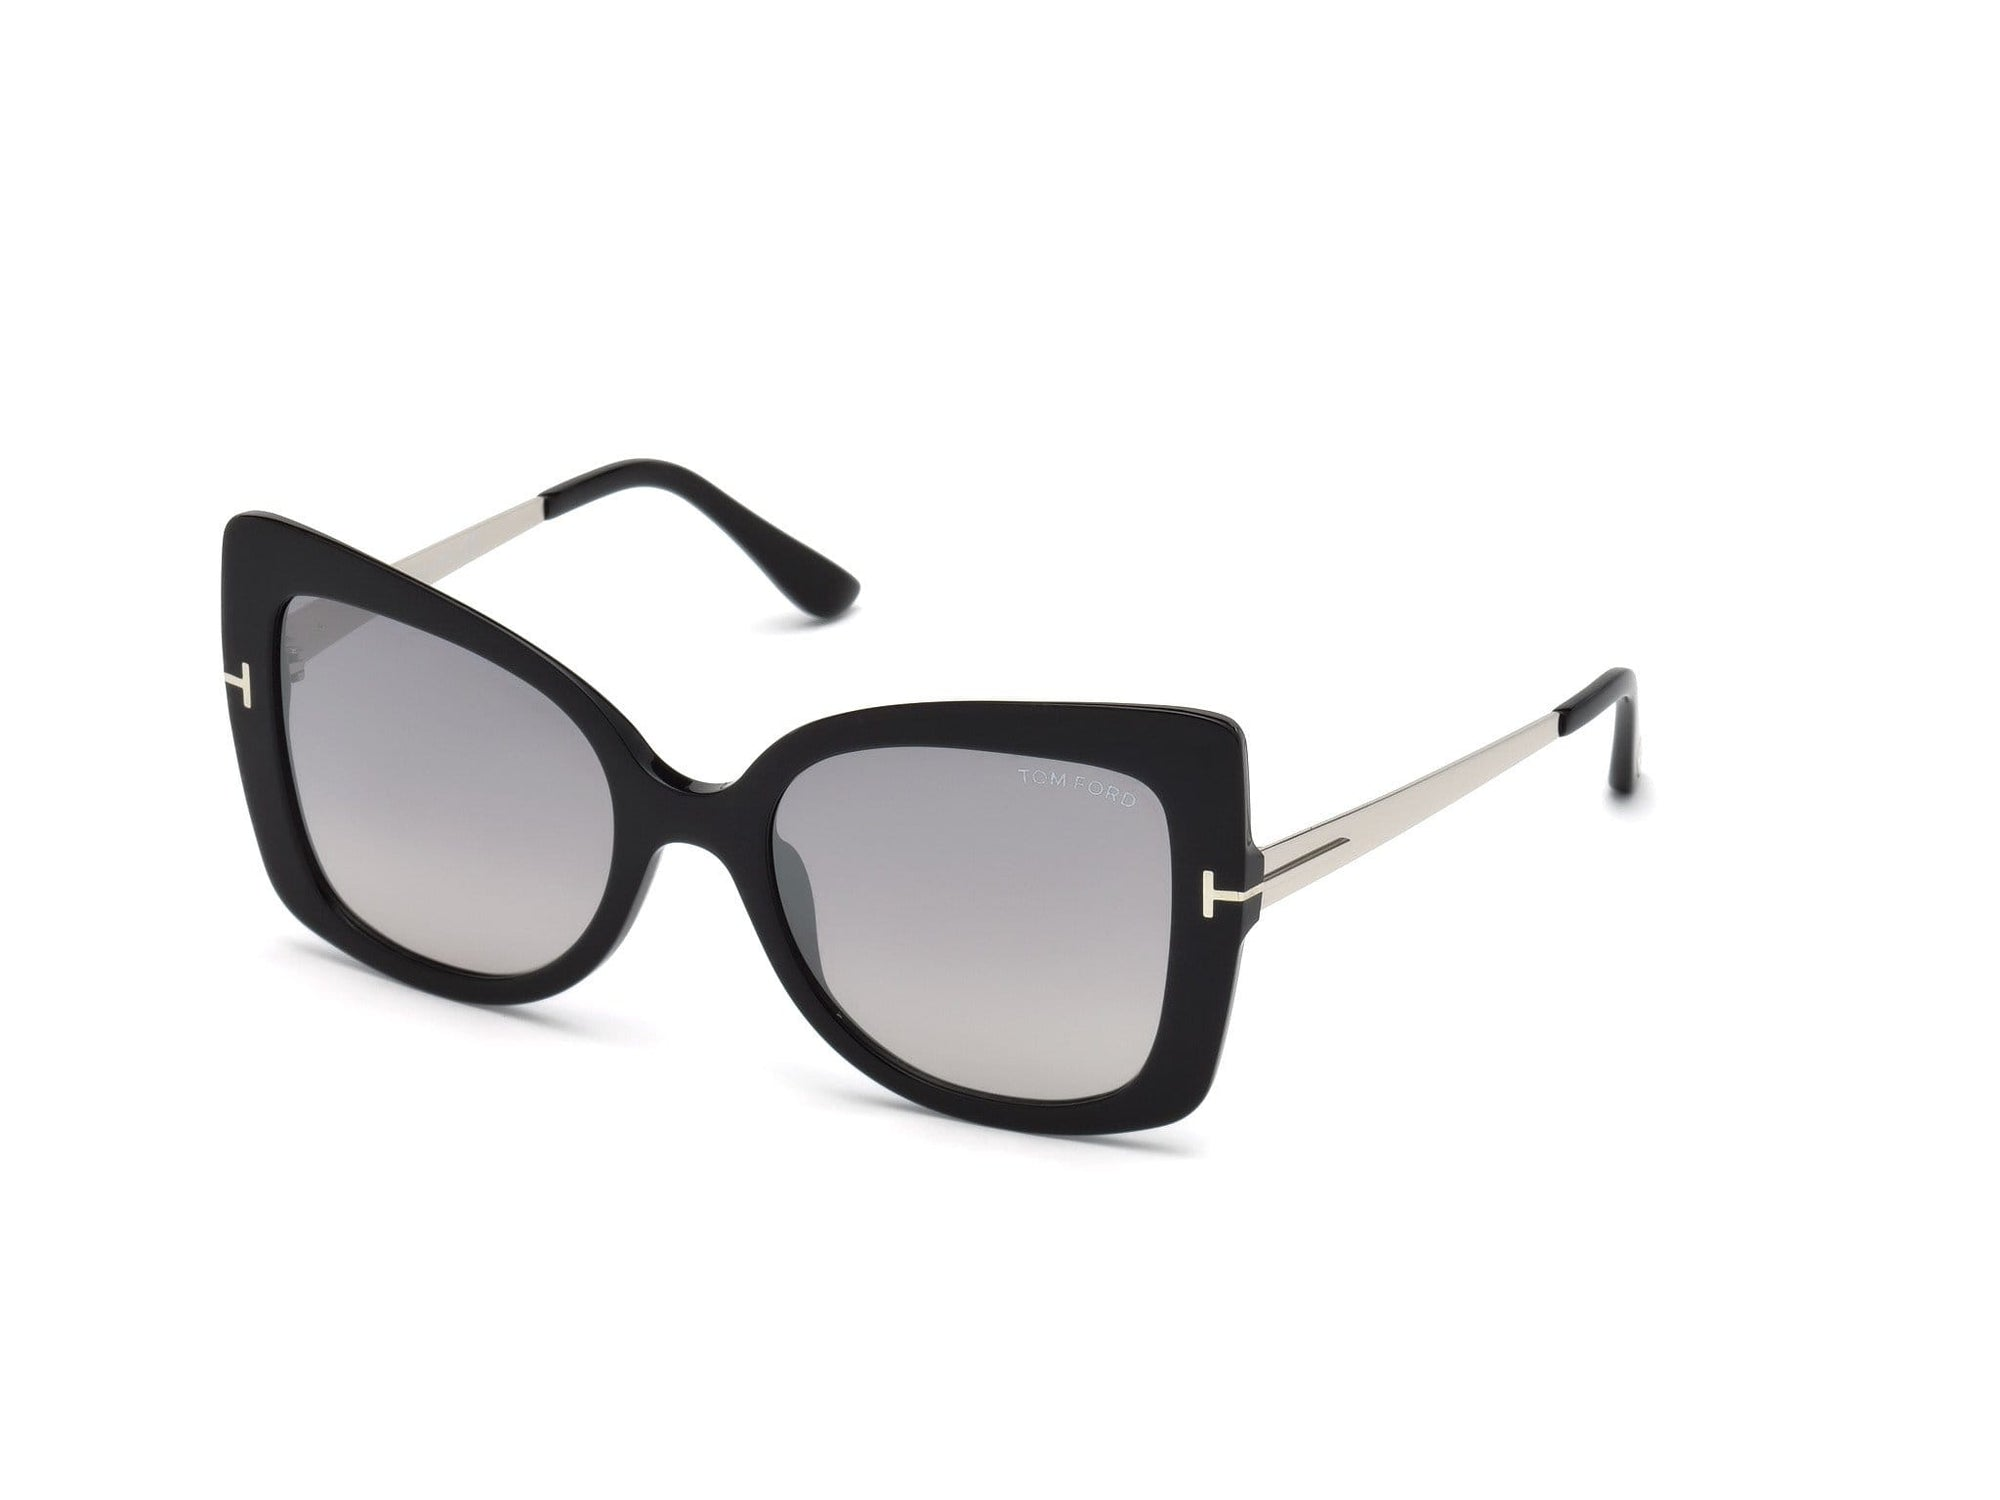 Tom Ford FT0609 Gianna-02 Butterfly Sunglasses 01C-01C - Shiny Black, Palladium Temples/ Grad. Smoke Lenses, Silver Flash